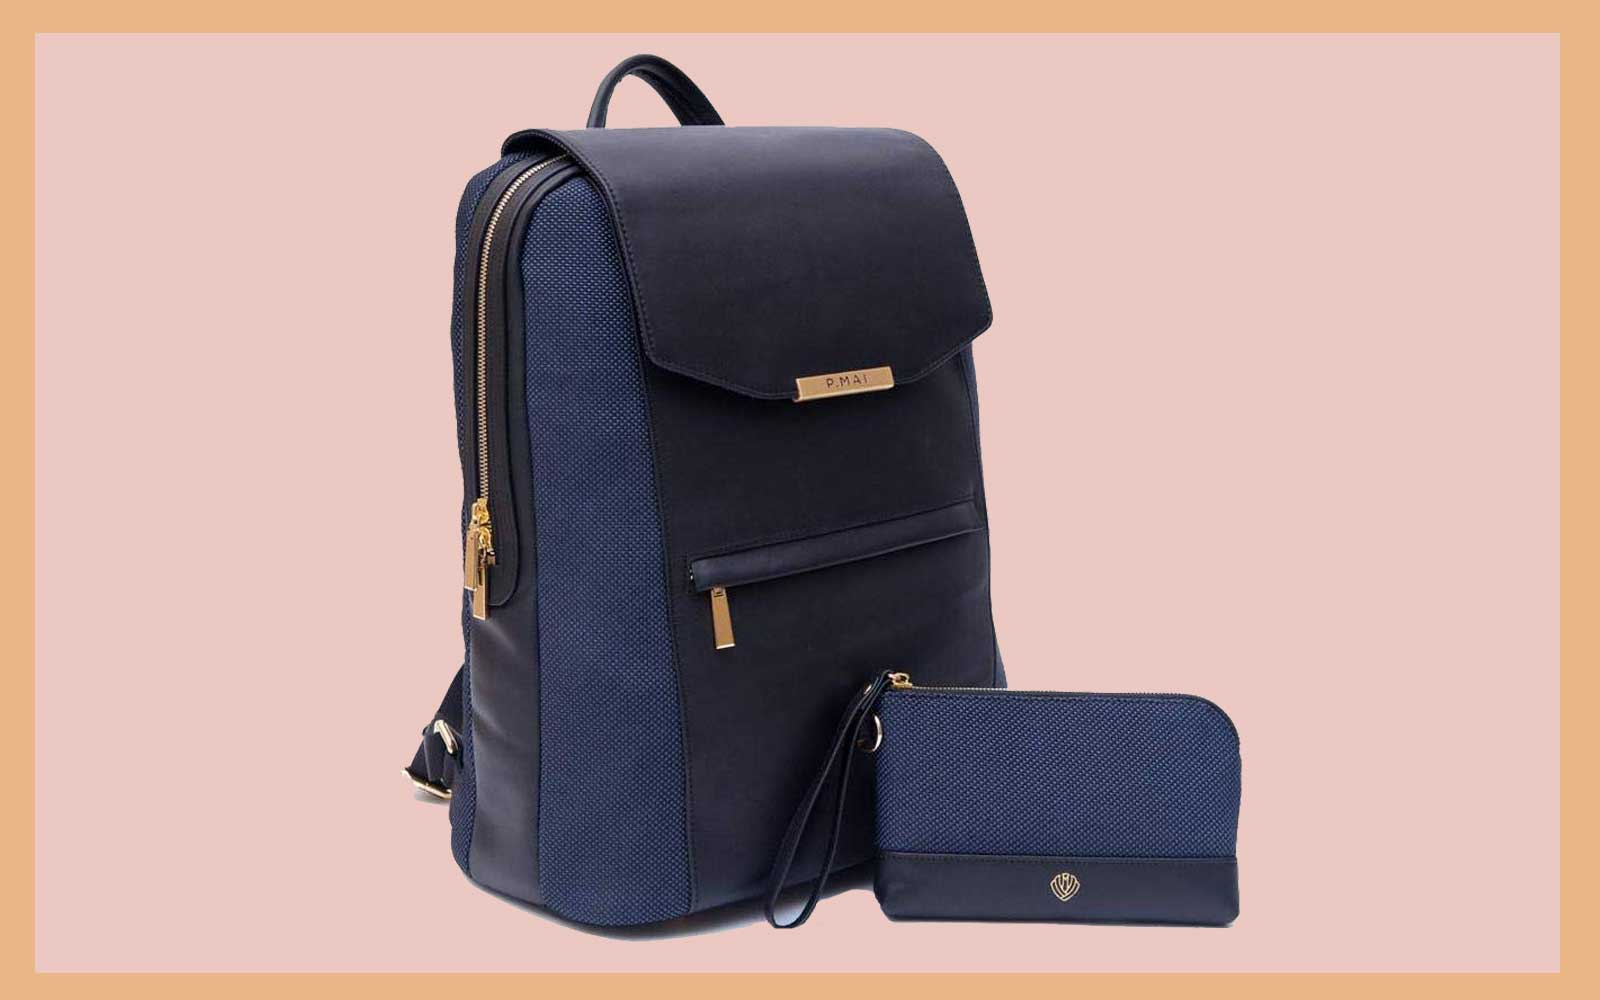 Navy and Black Leather Backpack